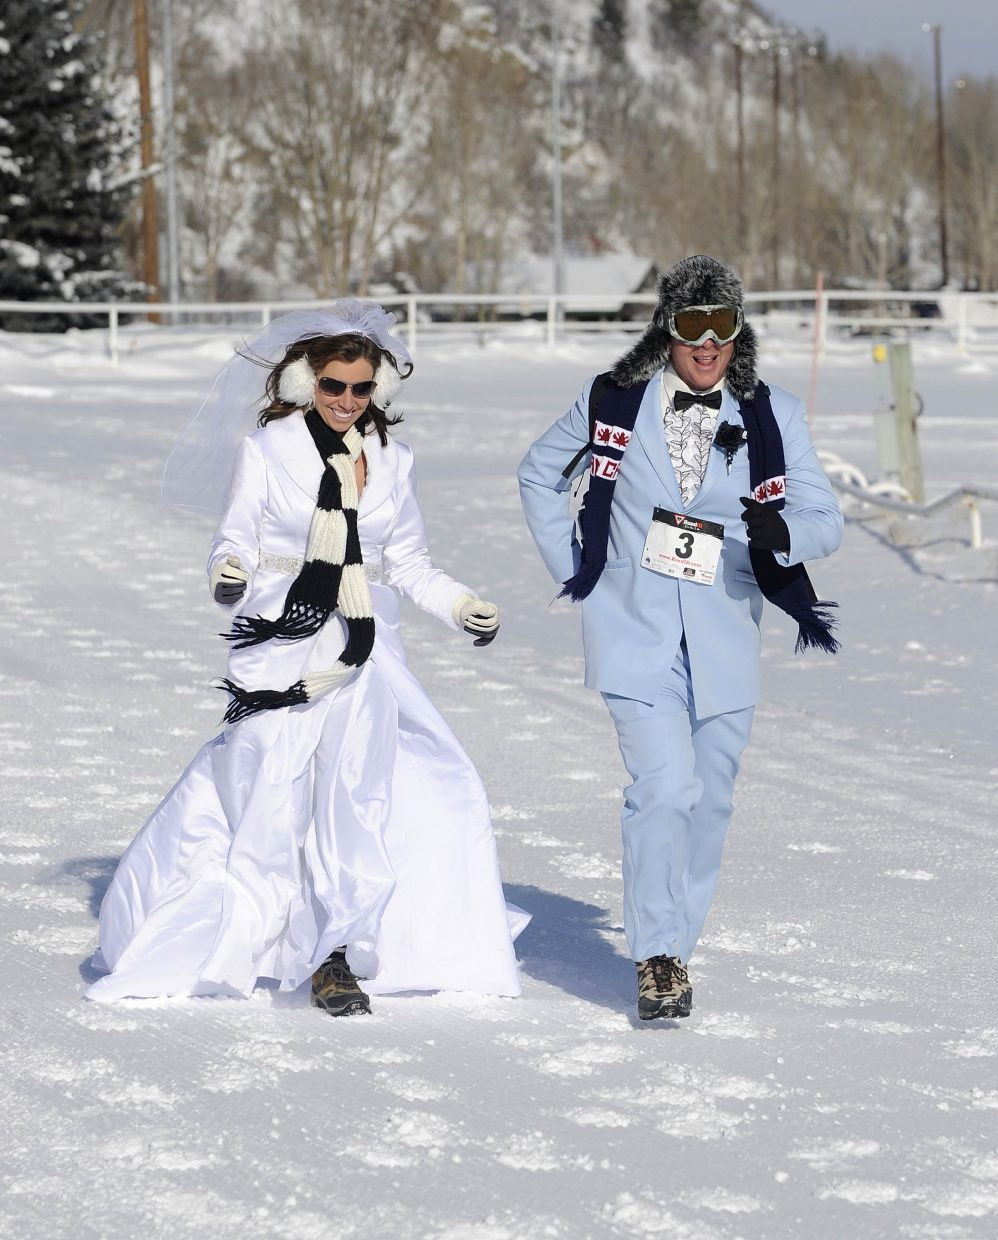 Melissa and Walter Christopherson run the Love the Run You're With 10K in their wedding attire on their first anniversary Saturday. The Steamboat Springs Winter Running Series event took place on a snowy Emerald Mountain course.